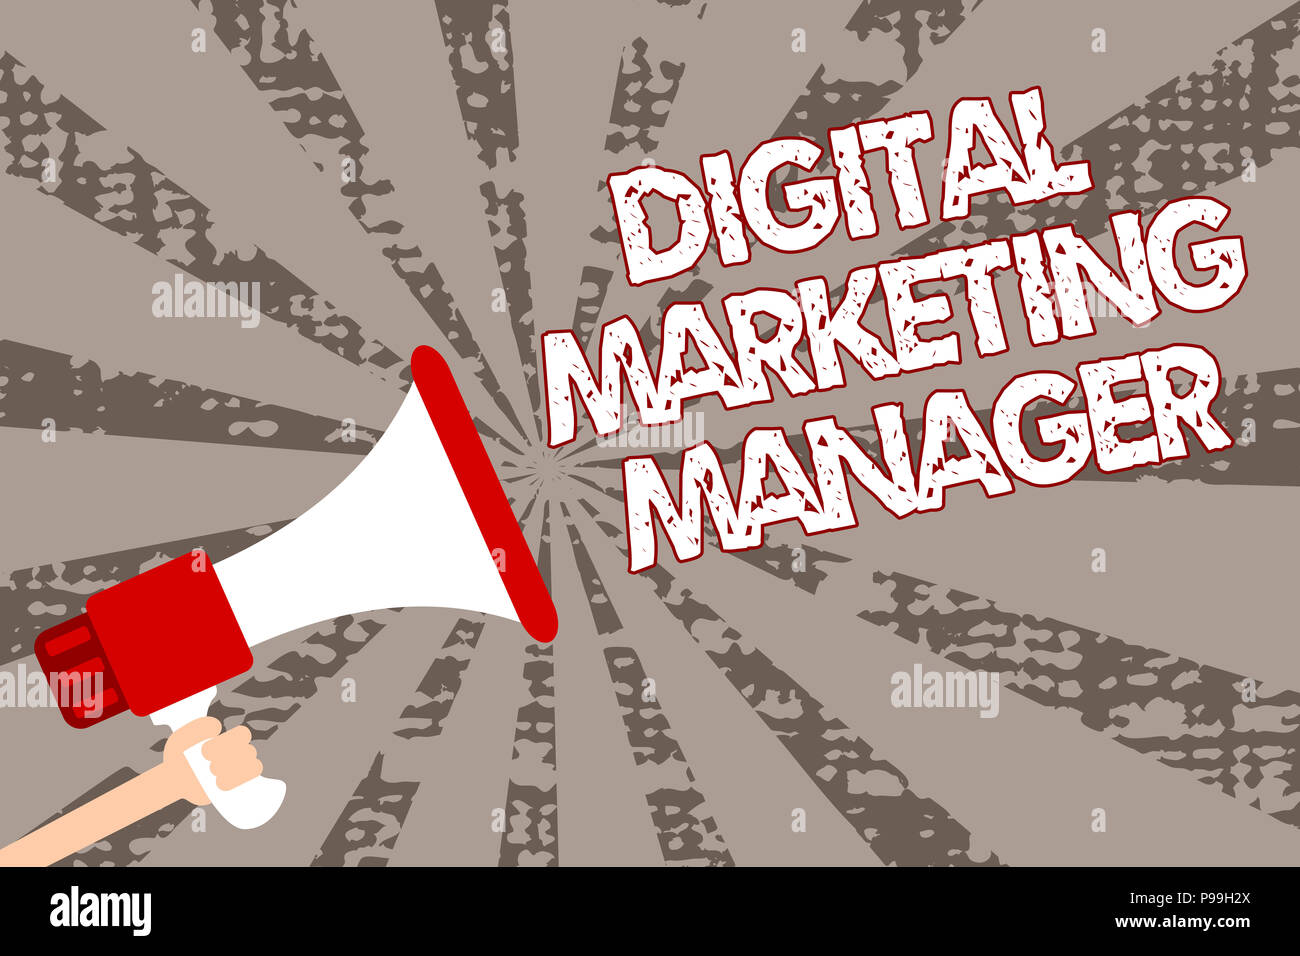 Text sign showing Digital Marketing Manager. Conceptual photo optimized for posting in online boards or careers Man holding megaphone loudspeaker grun - Stock Image